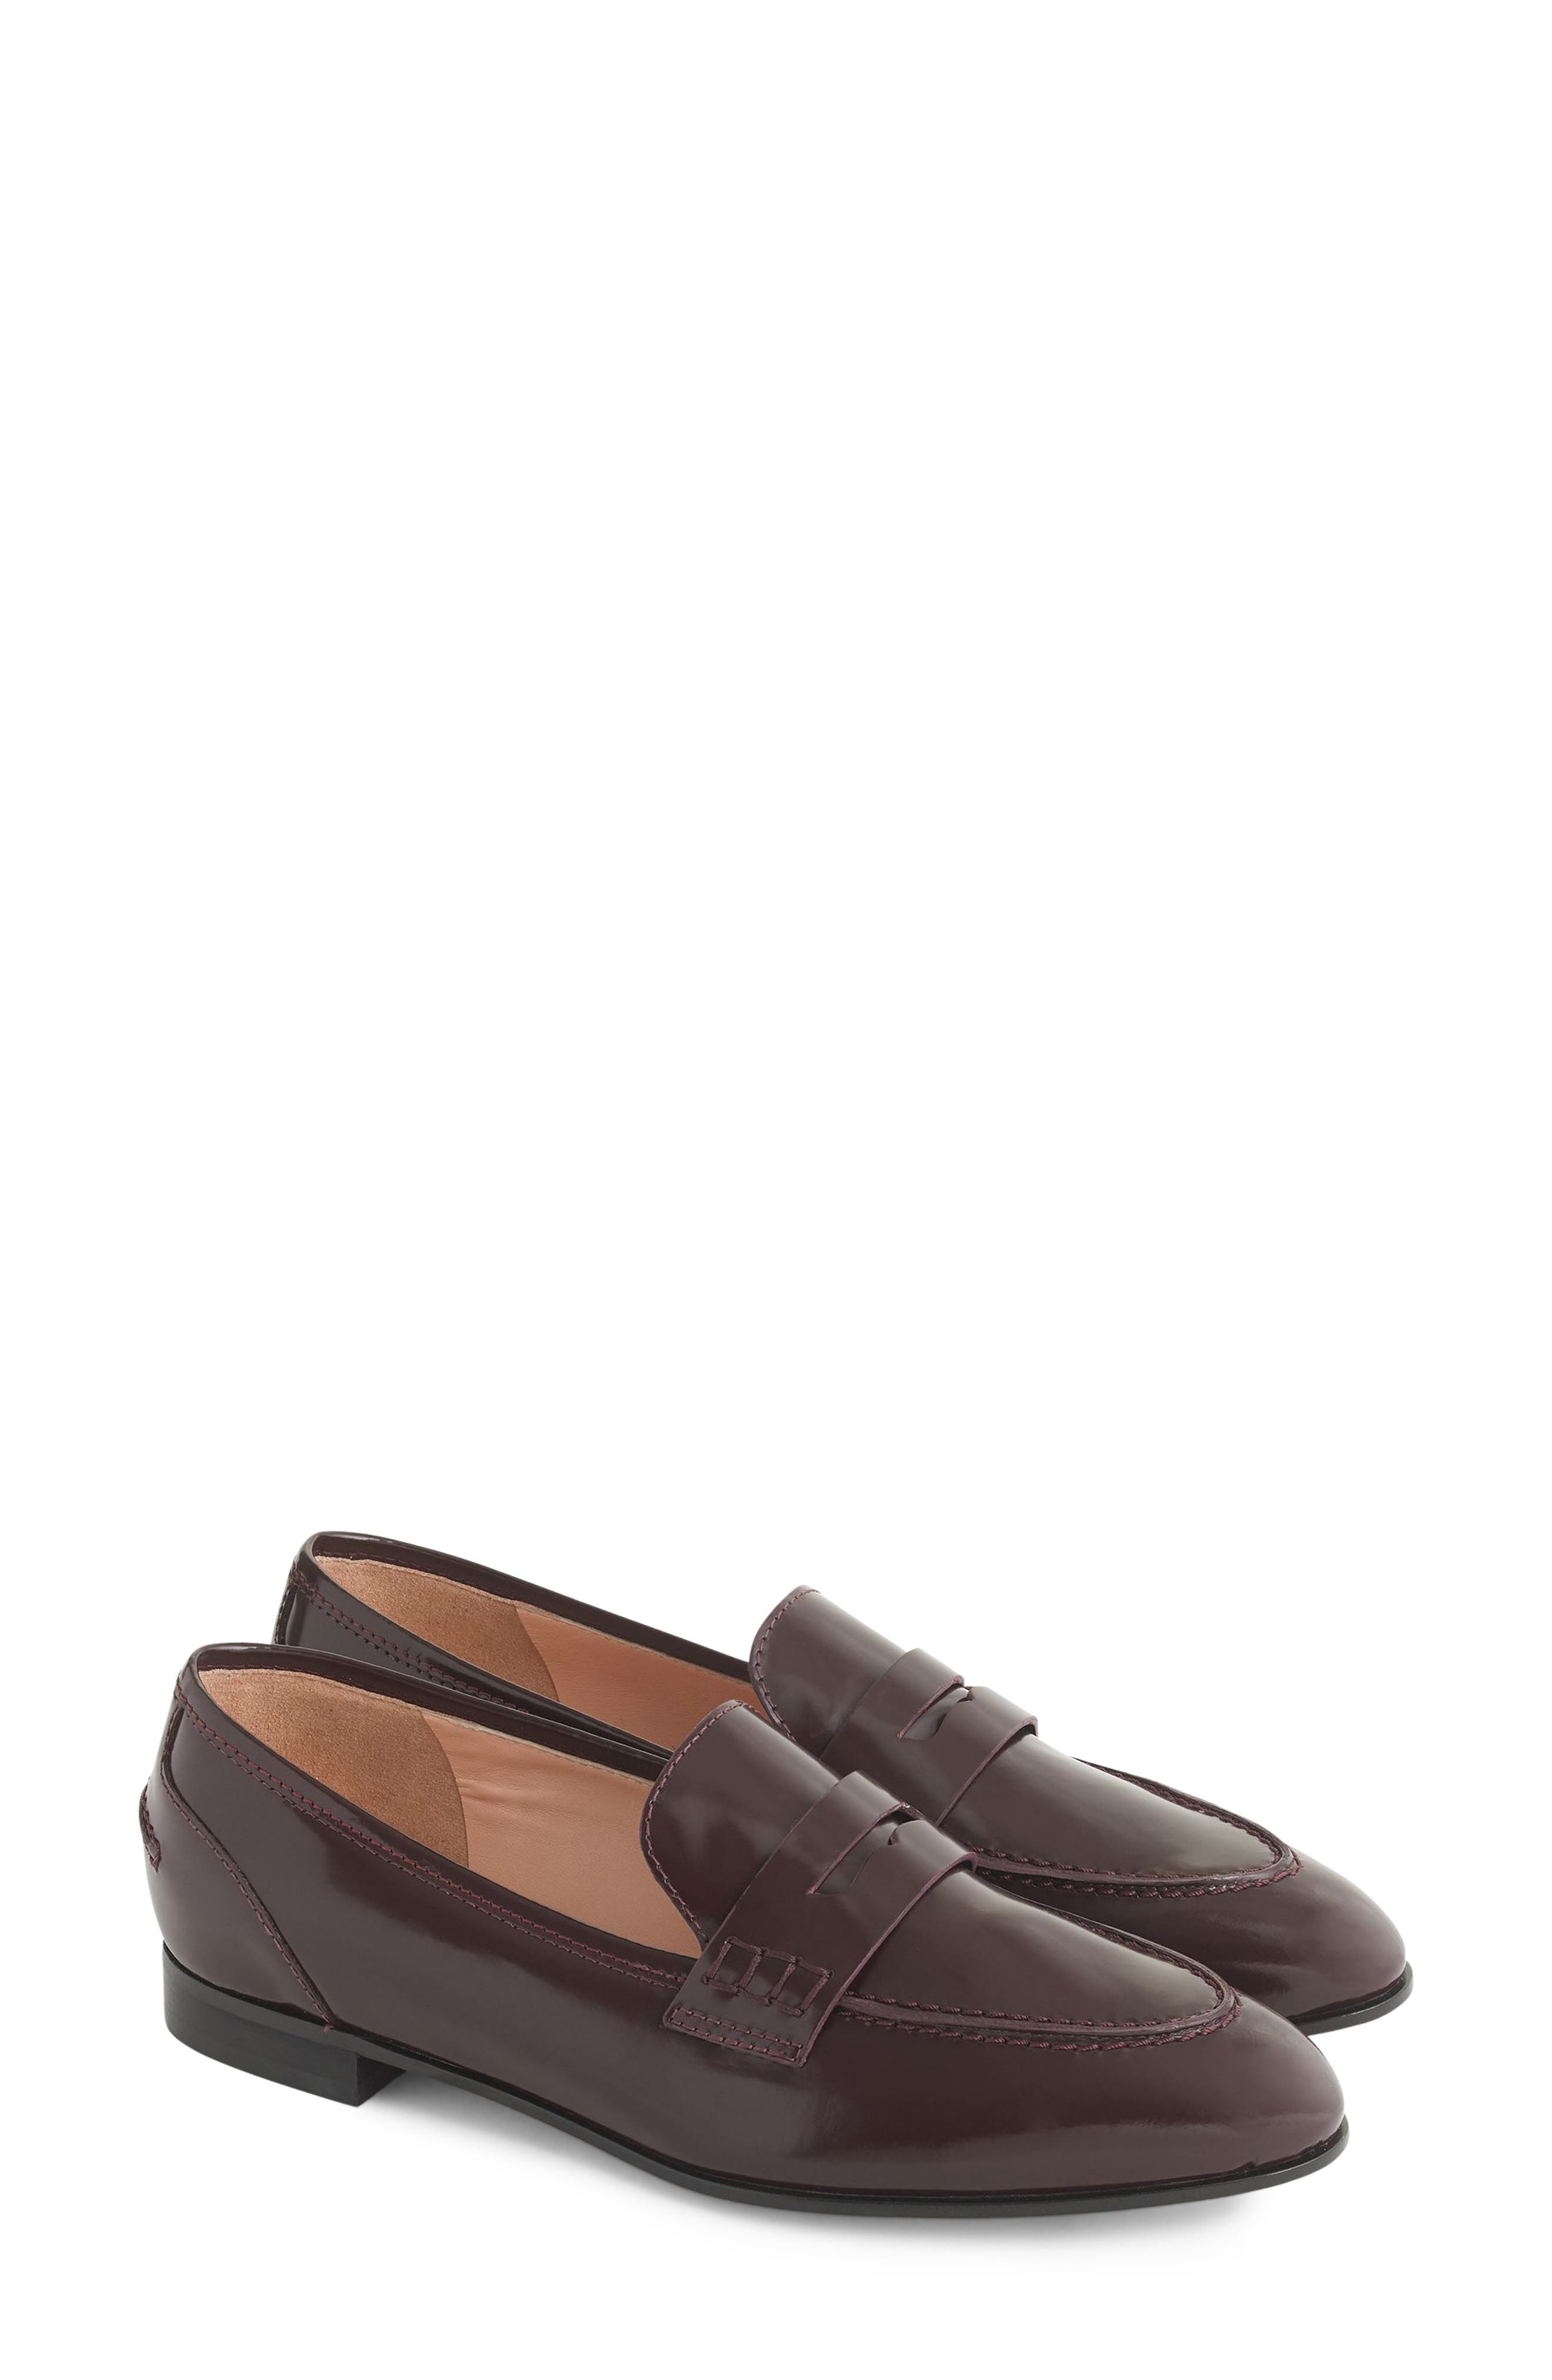 Academy Penny Loafer in Burnished Beet Leather